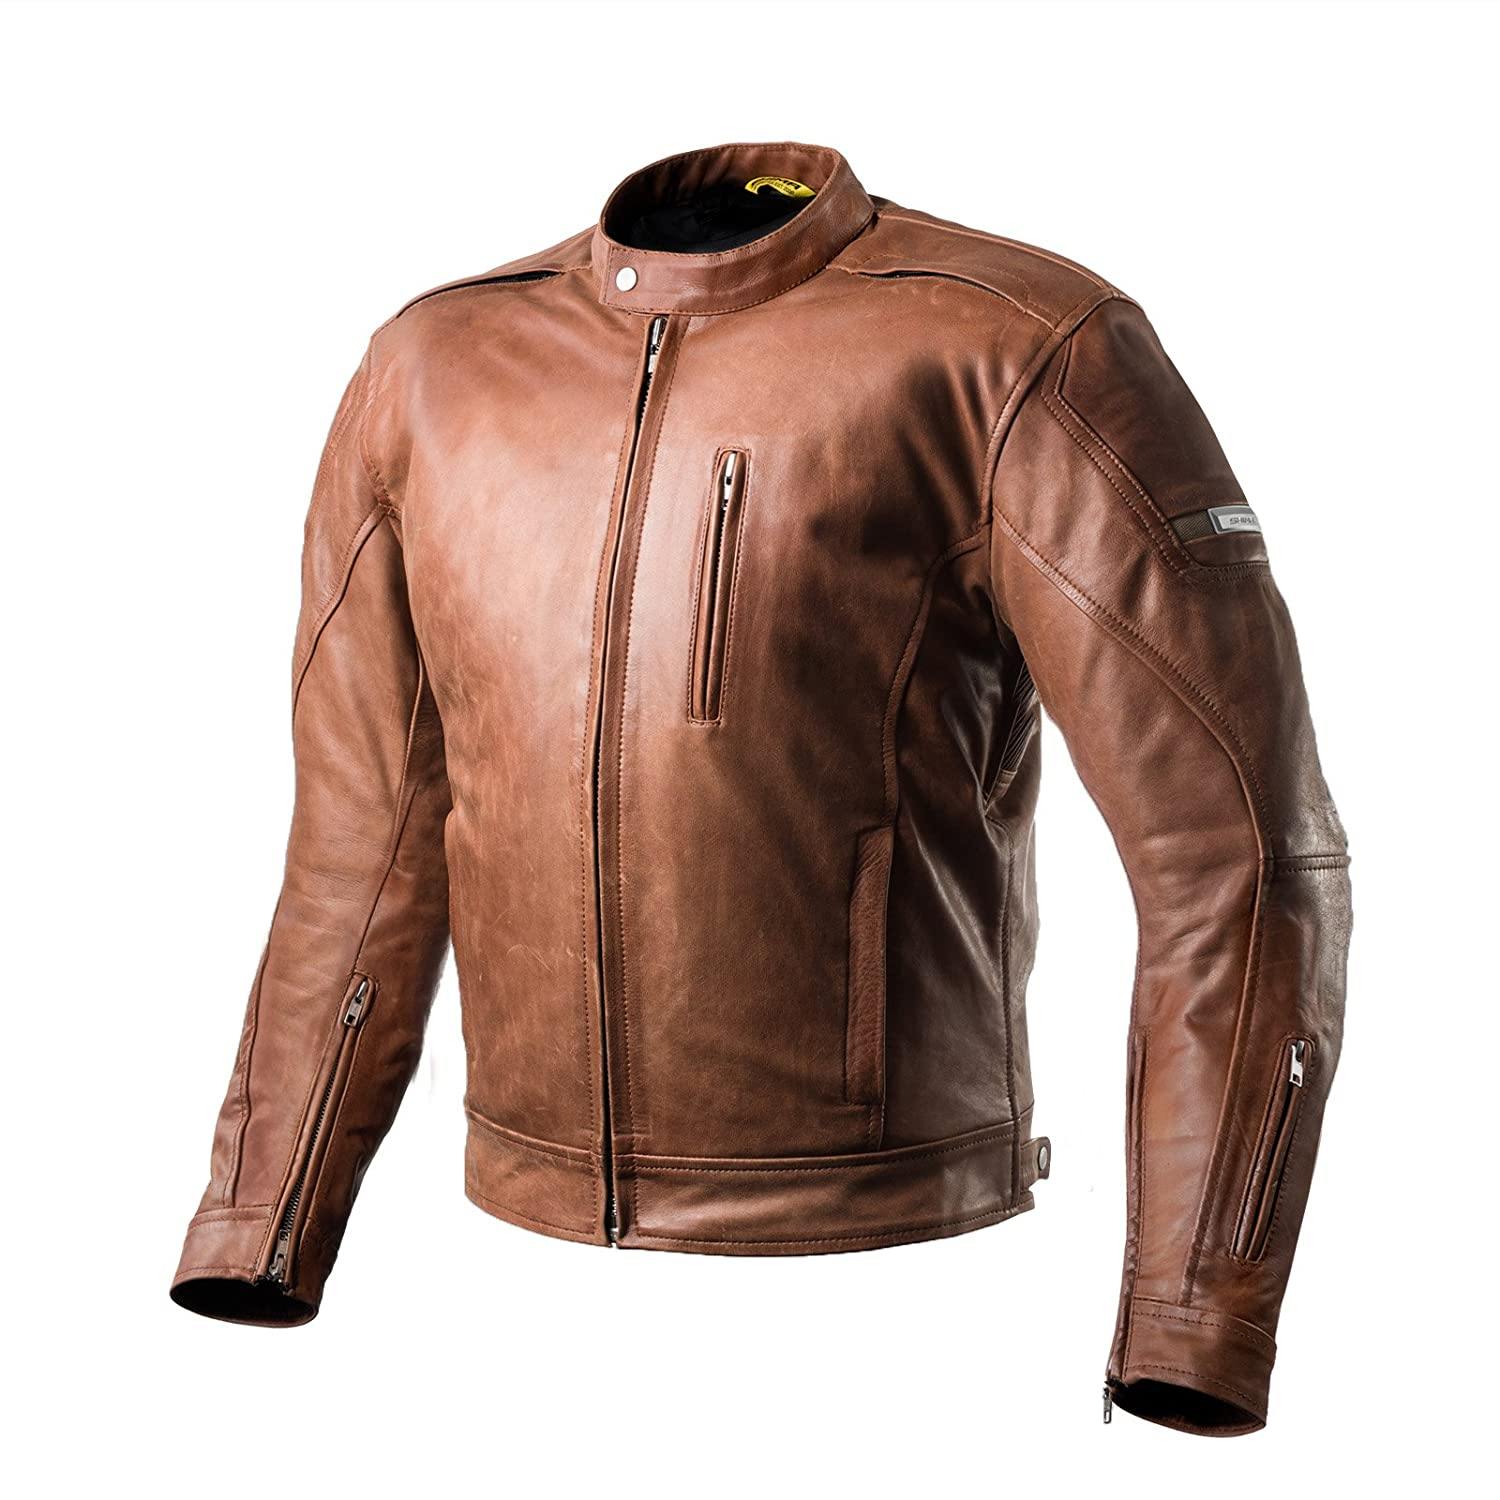 M, Black SHIMA Hunter Plus Mens Vintage Leather Motorcycle Jacket With Armor